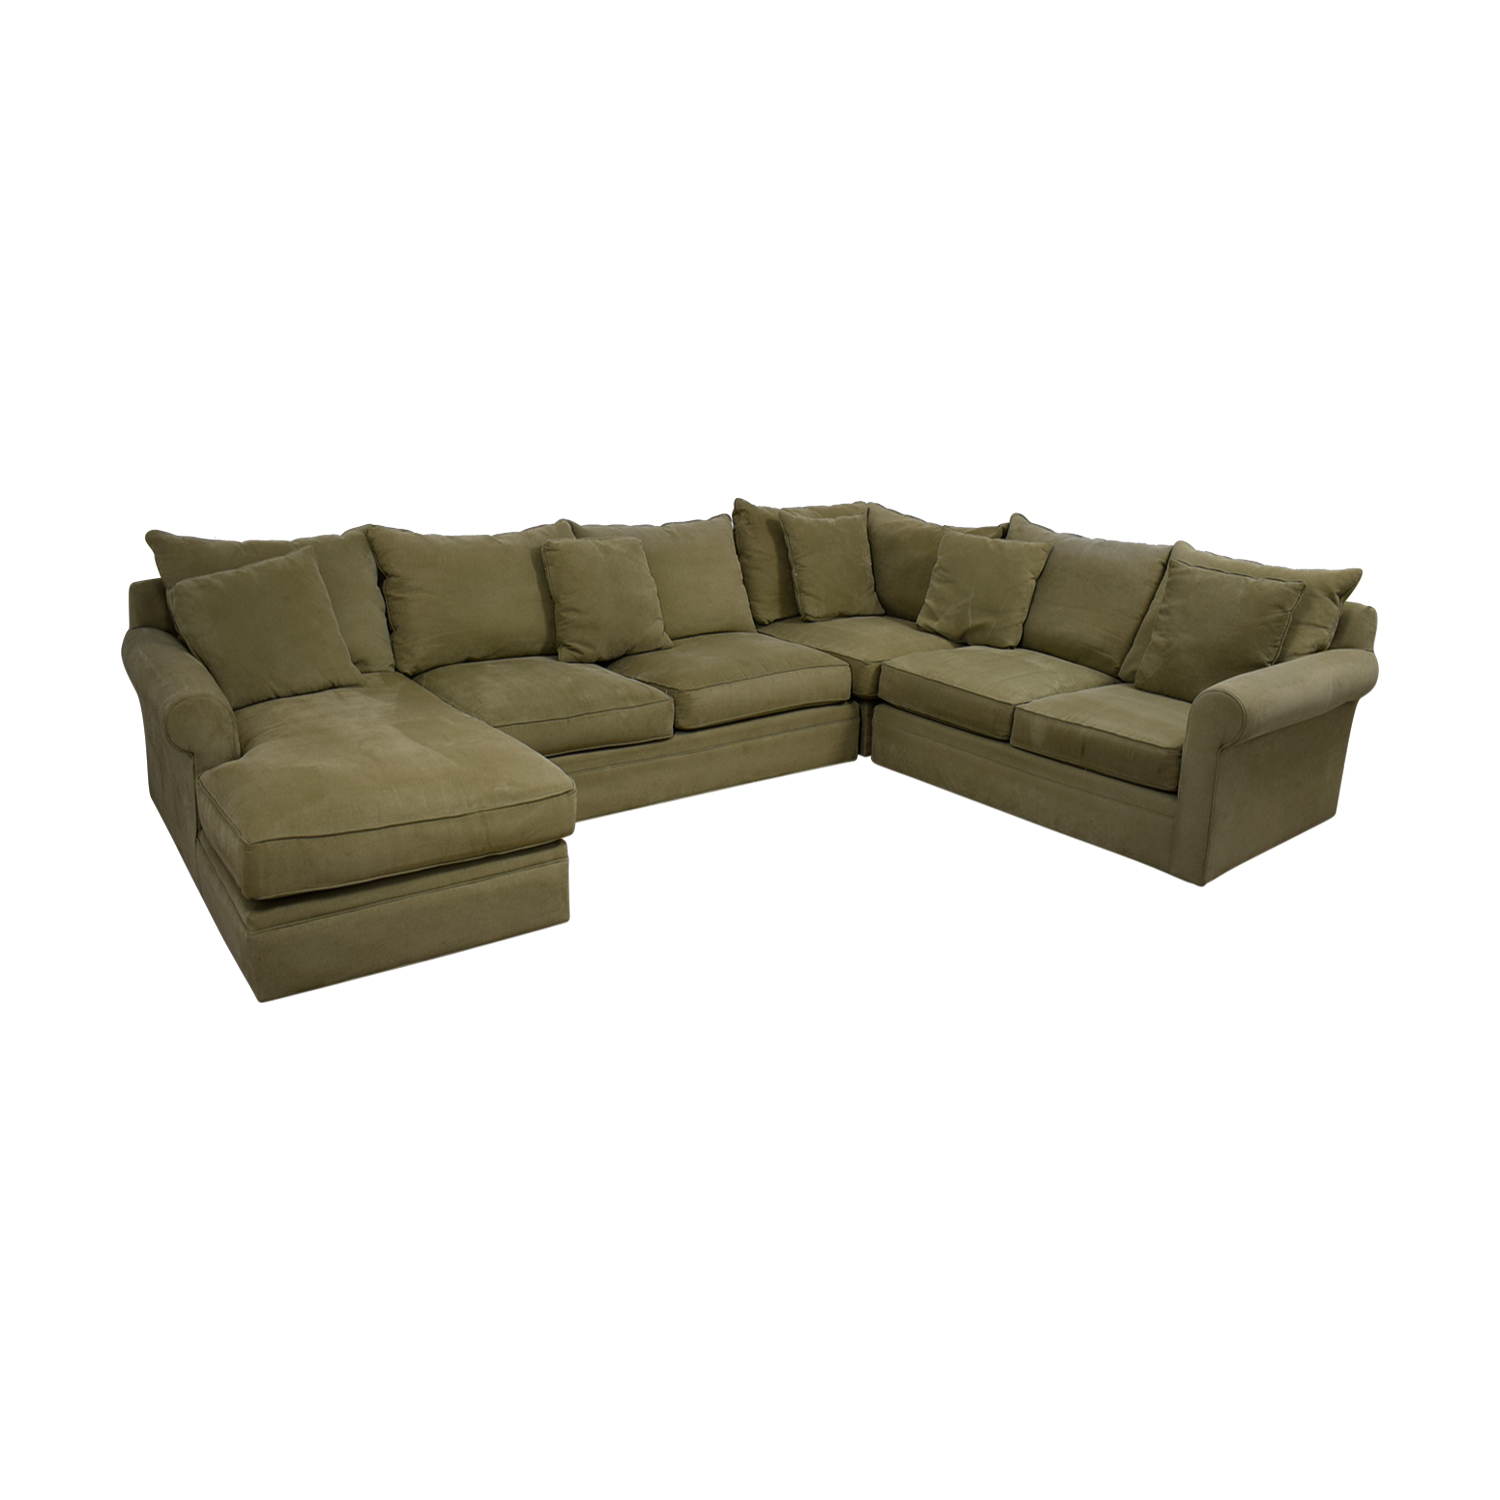 Macy's Macy's Beige L-Shaped Chaise Sectional dimensions